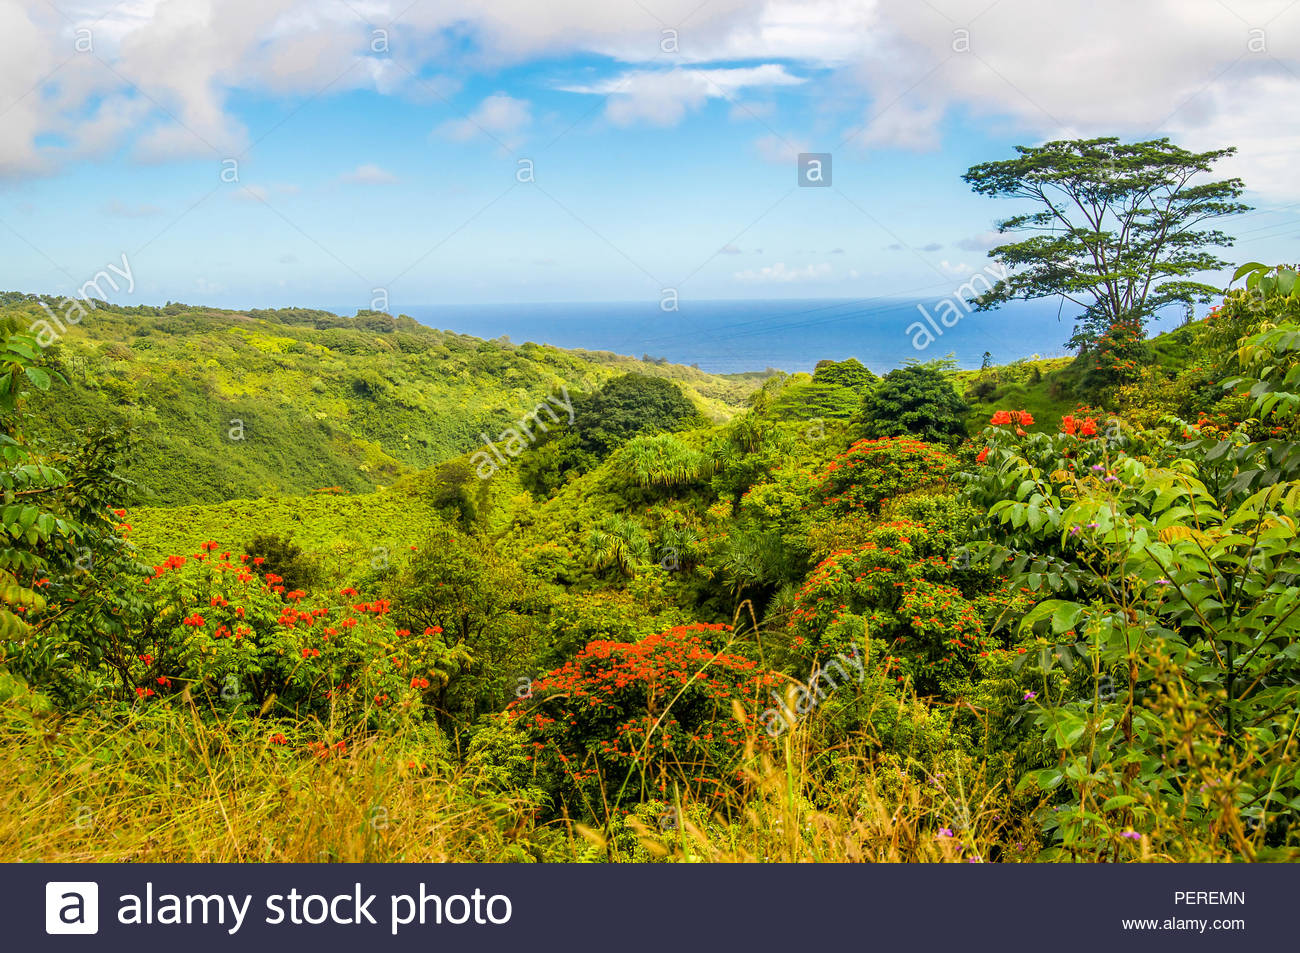 A Tropical Rainforest With Its Beautiful African Parrot Flowers Springs Up Along the Road to Hana on the Island of Maui in Hawaii - Stock Image